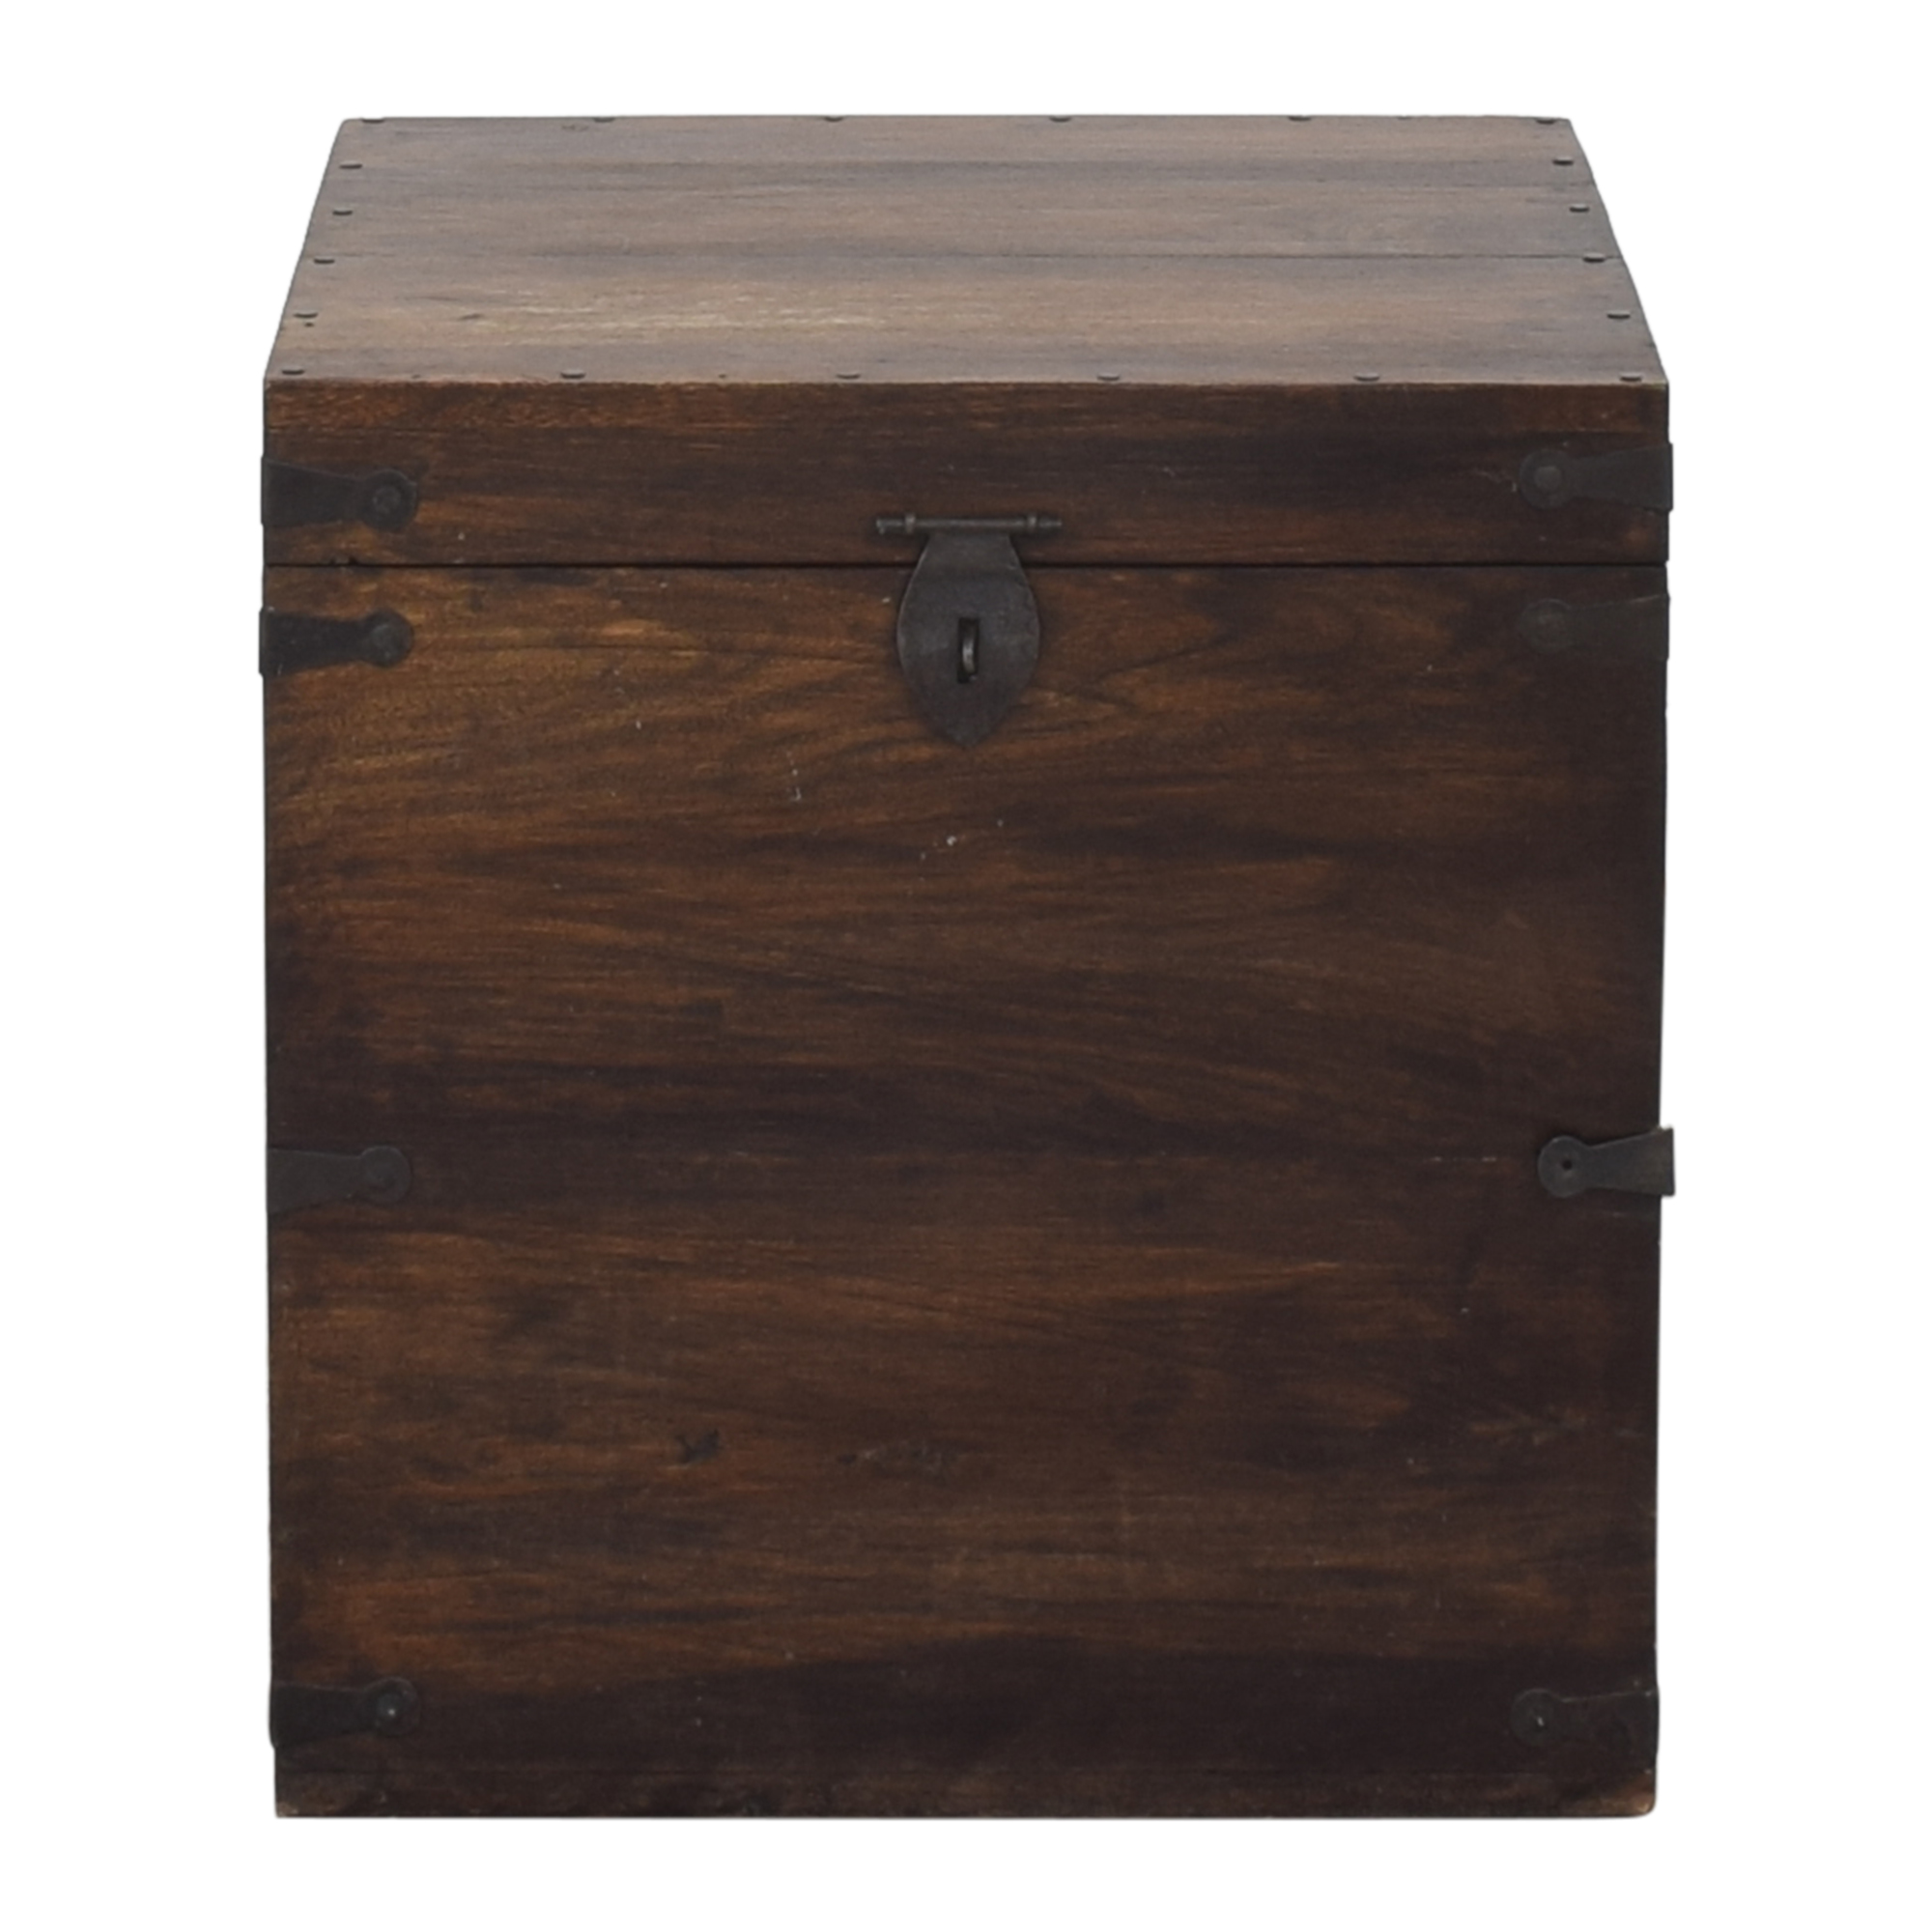 Pottery Barn Pottery Barn Wooden Box Trunk for sale